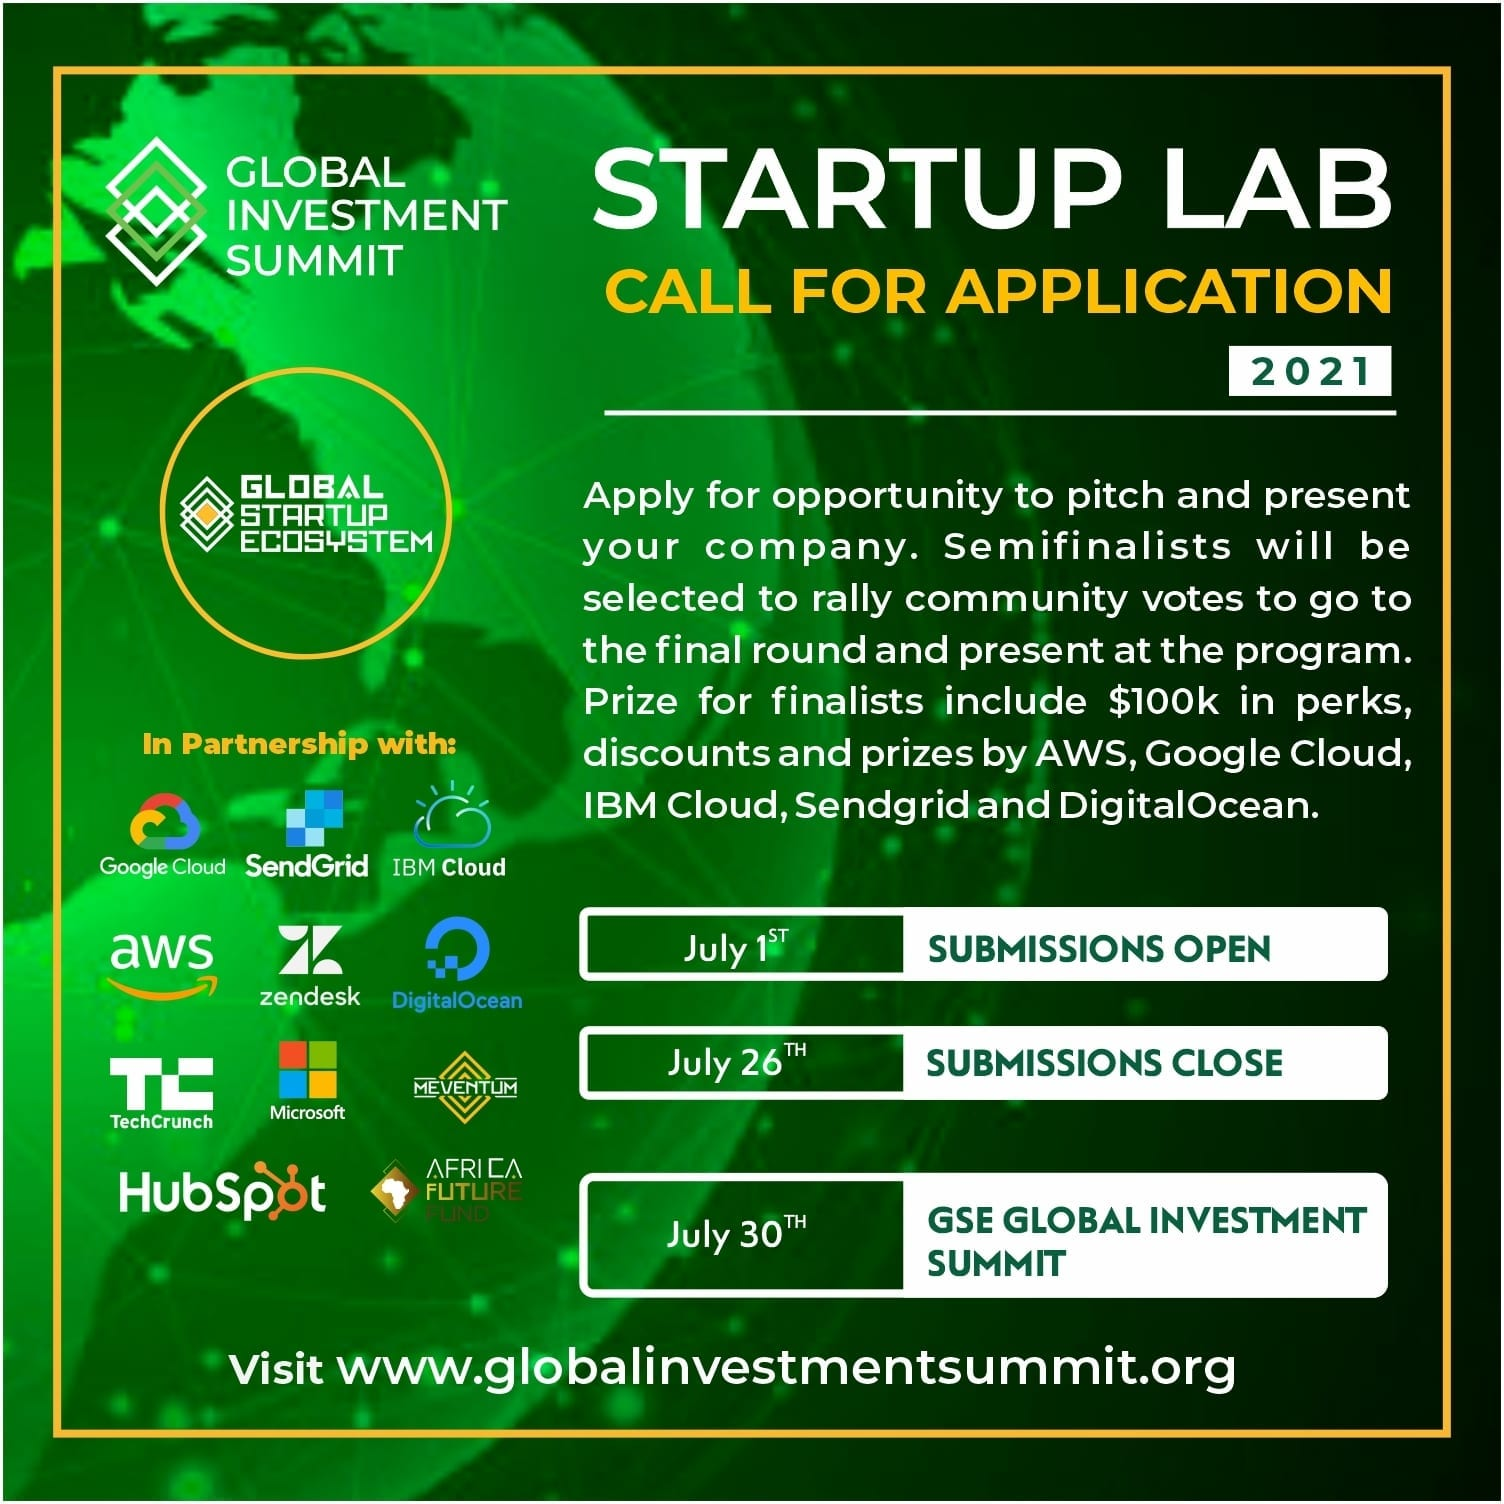 """Global Startup Ecosystem (GSE) announces free access to annual """"GSE Global Investment Summit"""" to connect founders to investors"""